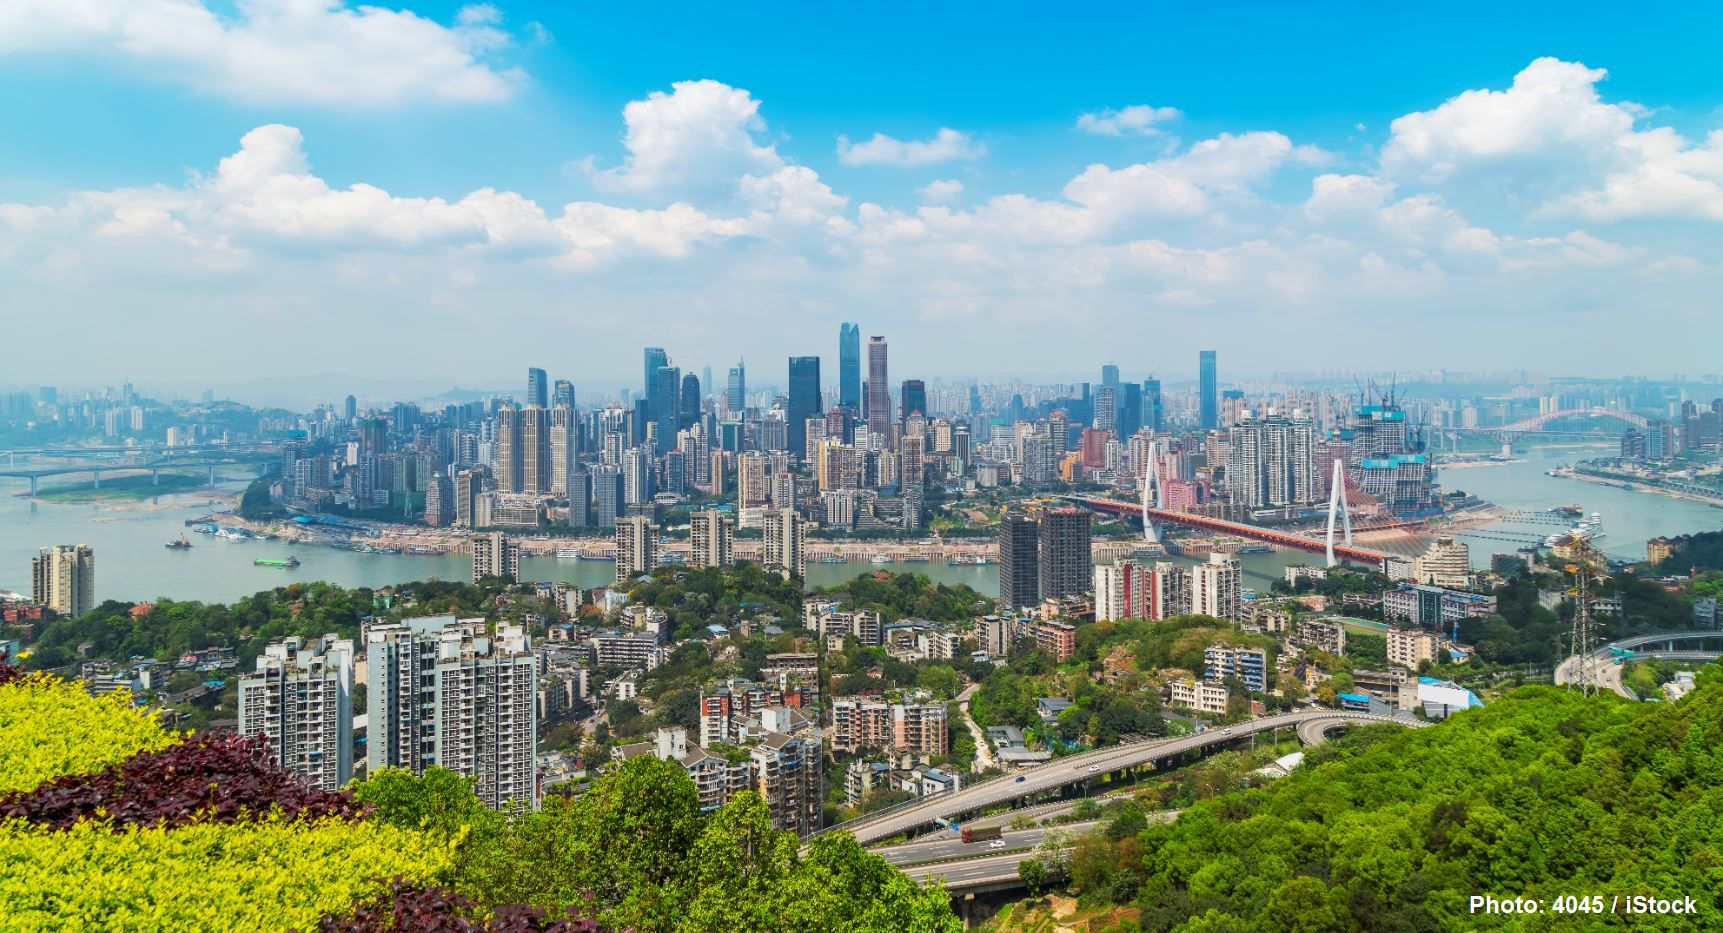 Urban architecture and skyline of Chongqing, China. (Photo: 4045 / iStock)